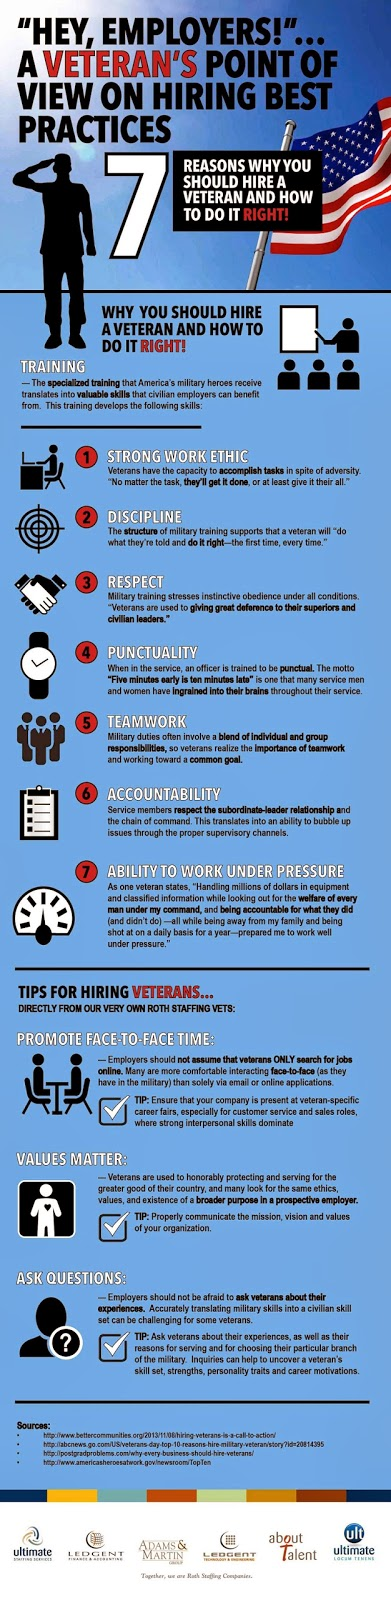 Hire a Hero, Hire a Vet® 7 Reasons to Hire a Veteran INFOGRAPHIC